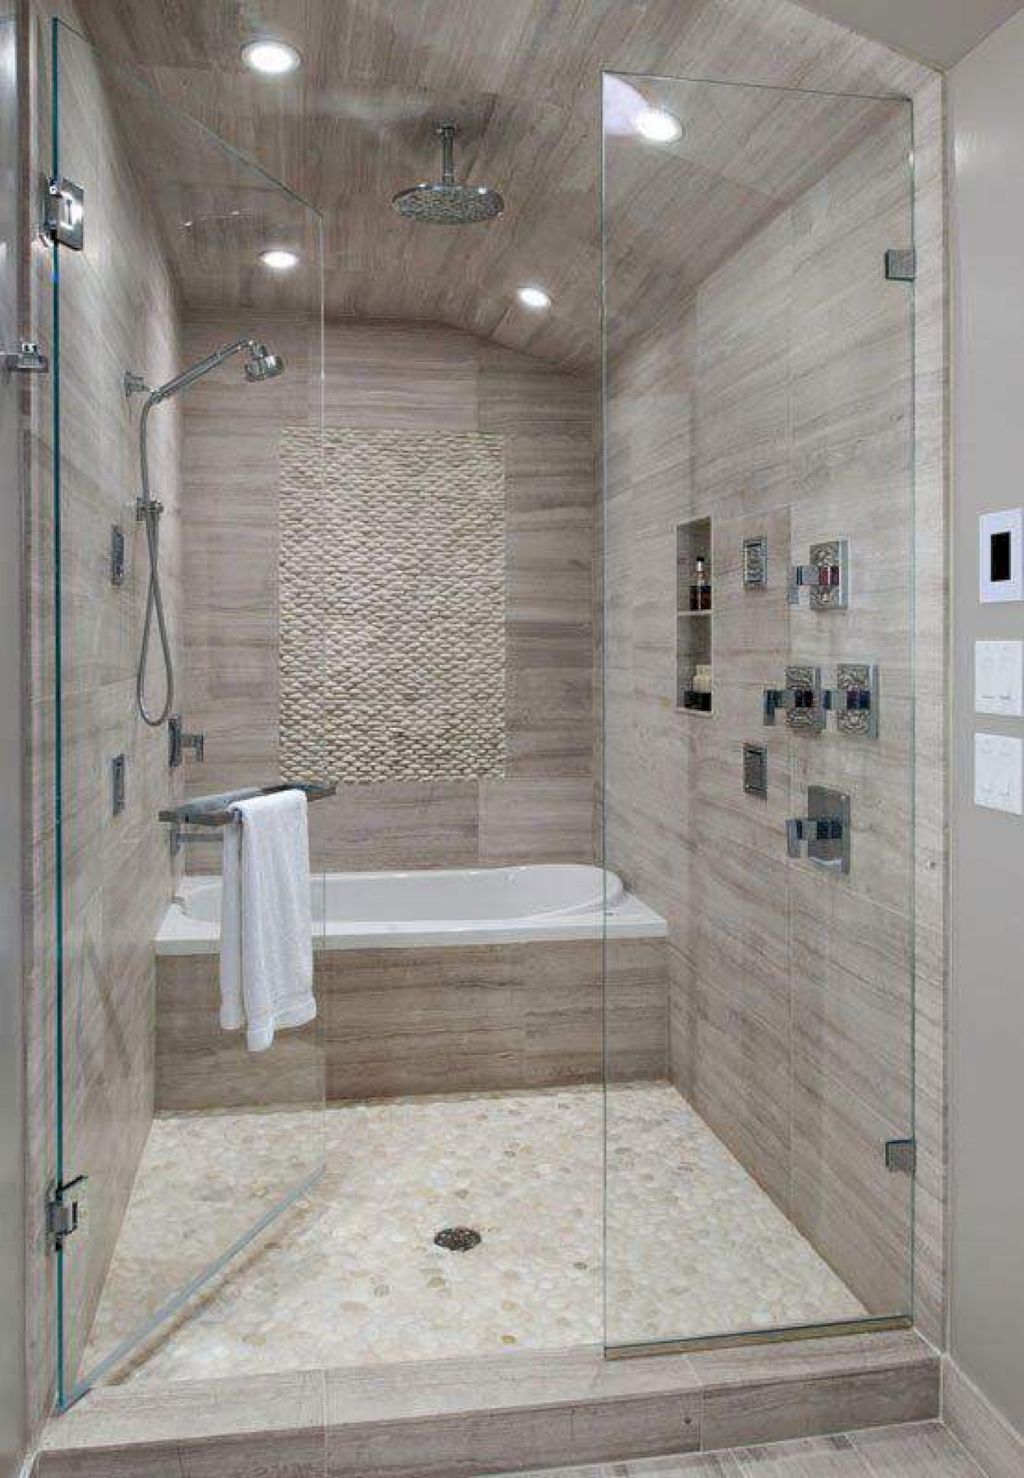 Awesome Master Bathroom Ideas 24 With Images Bathroom Remodel Master Bathroom Remodel Shower Bathrooms Remodel